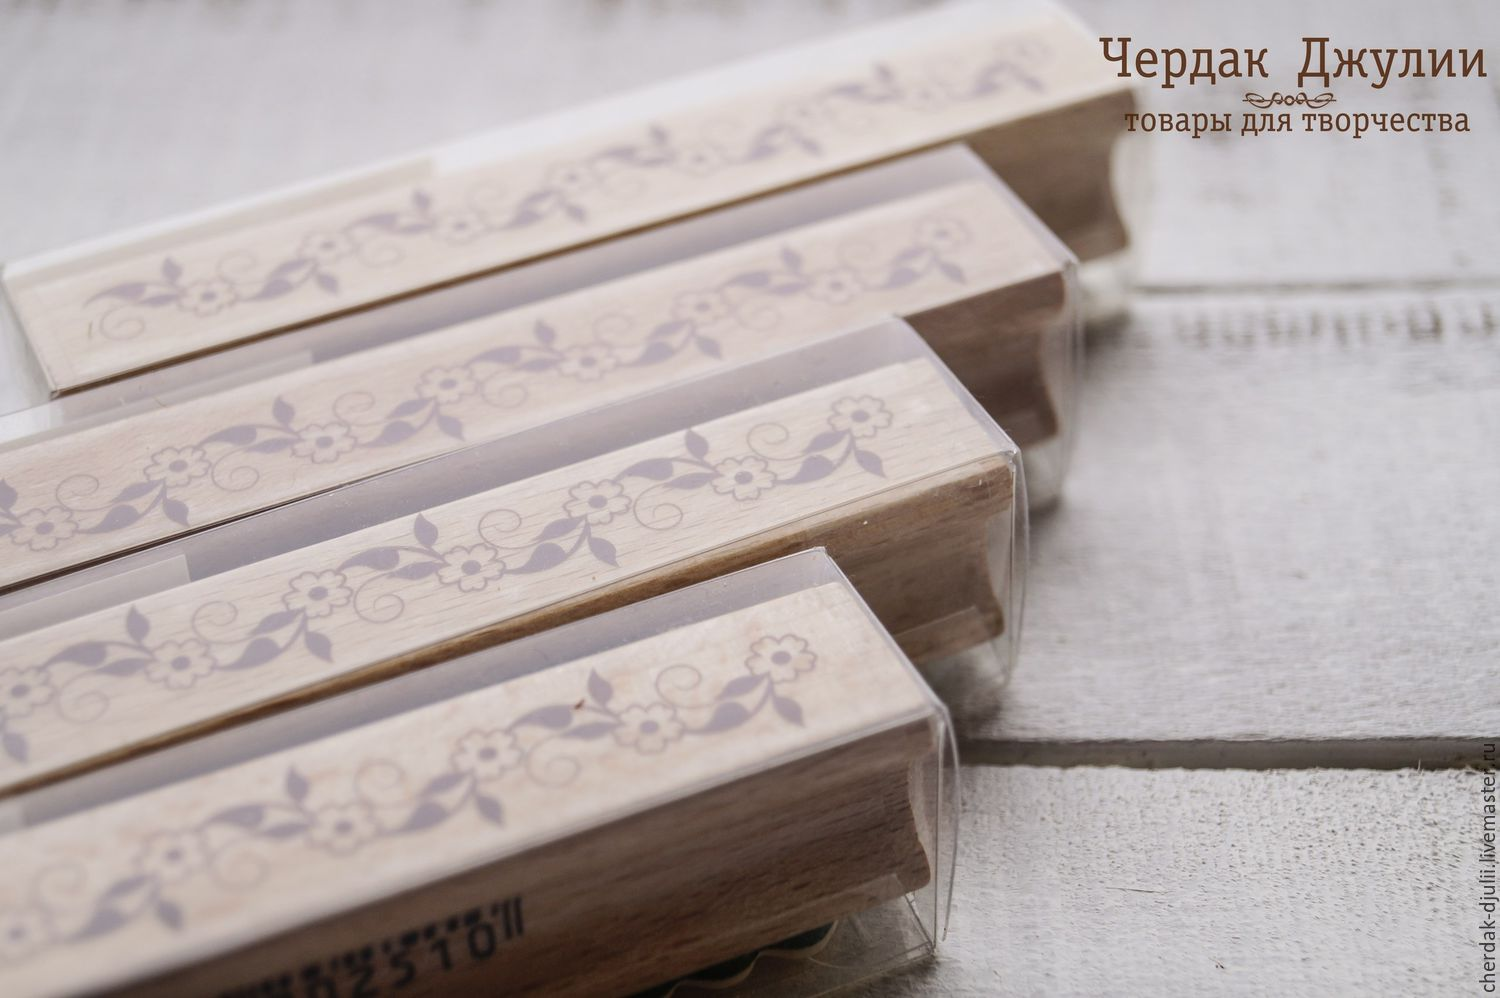 Rubber stamps for crafting - Order Rubber Stamp For Crafting Julia S Attic Livemaster